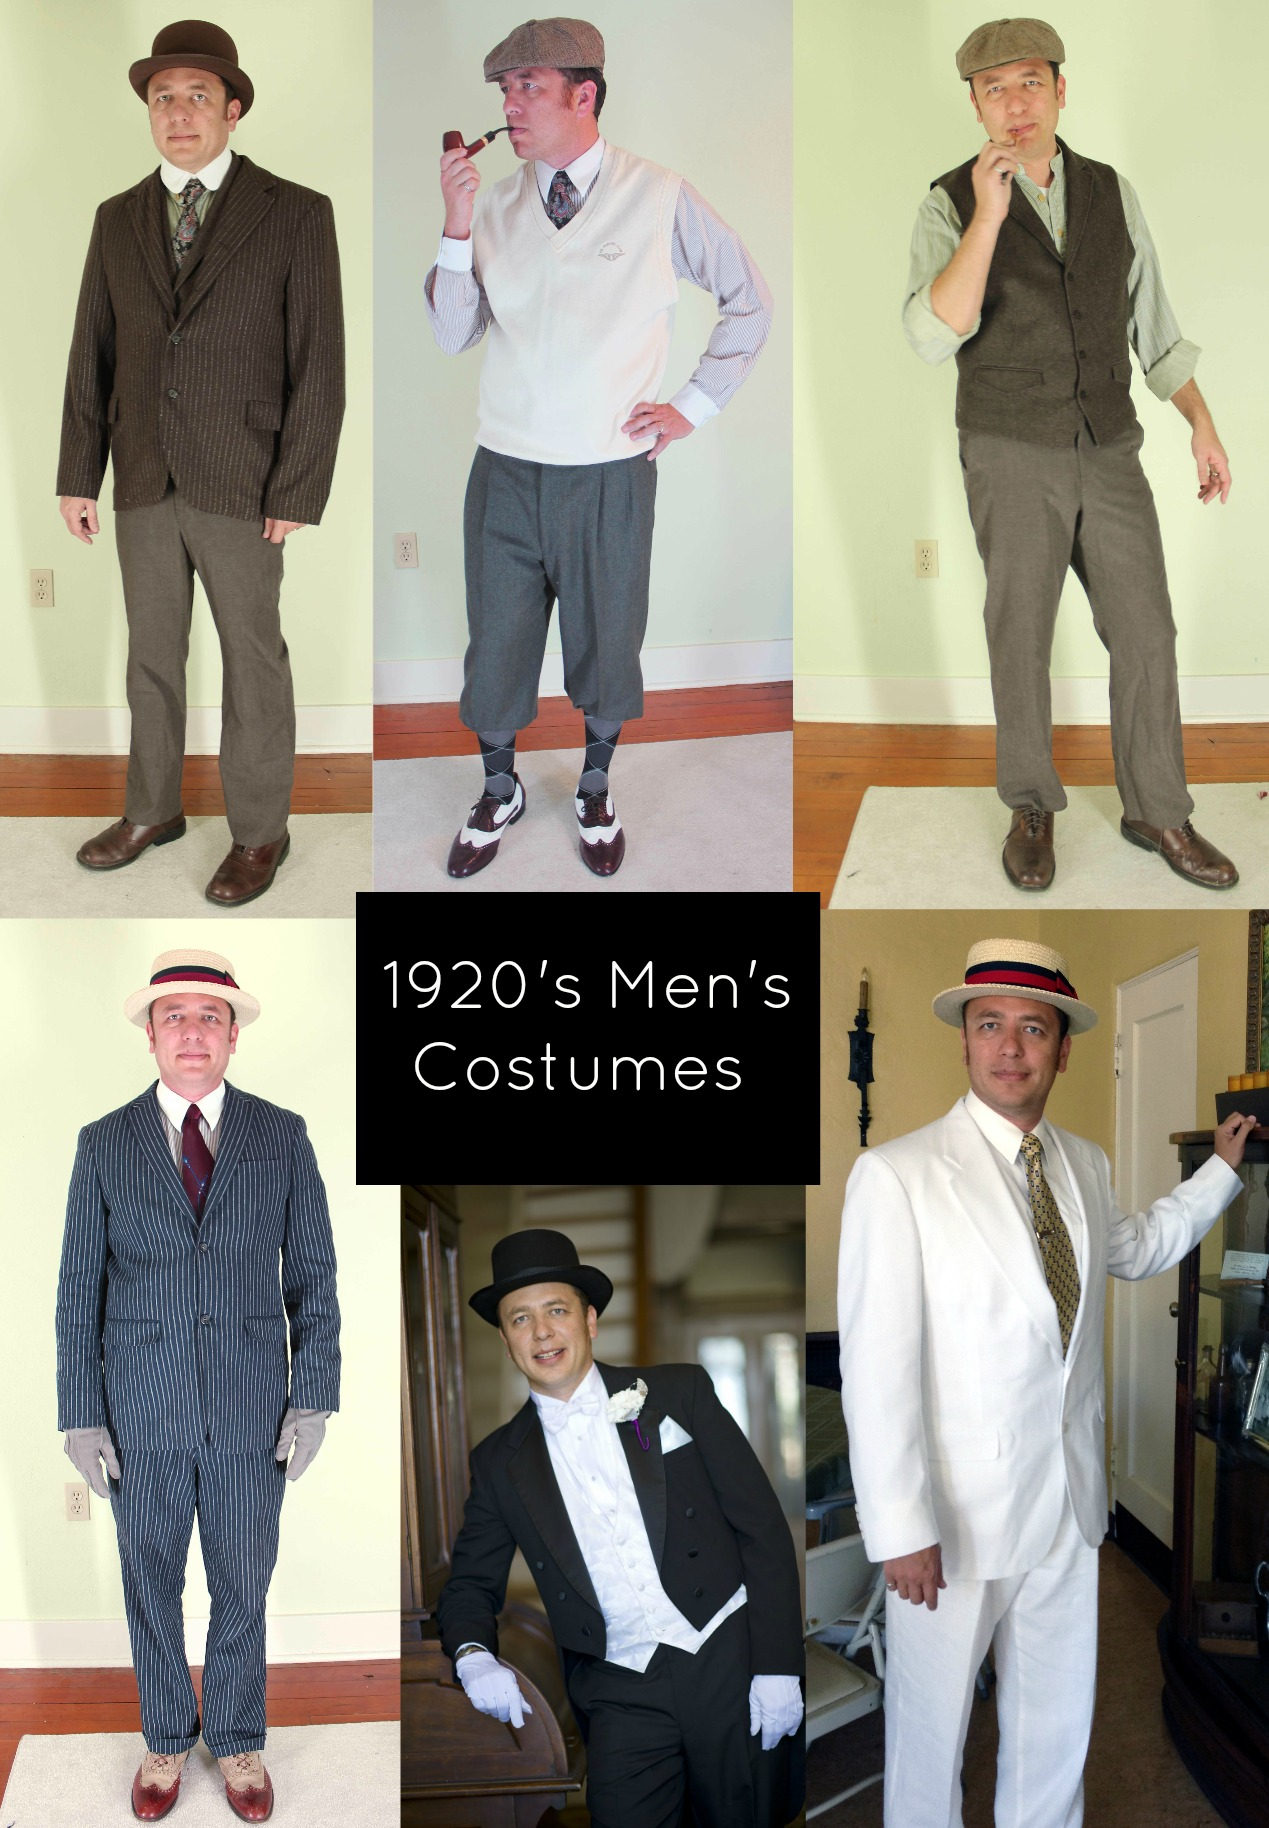 Connu 1920s Clothing Mens Shop: Gatsby era suits, hats, shoes, ties, vests SL91